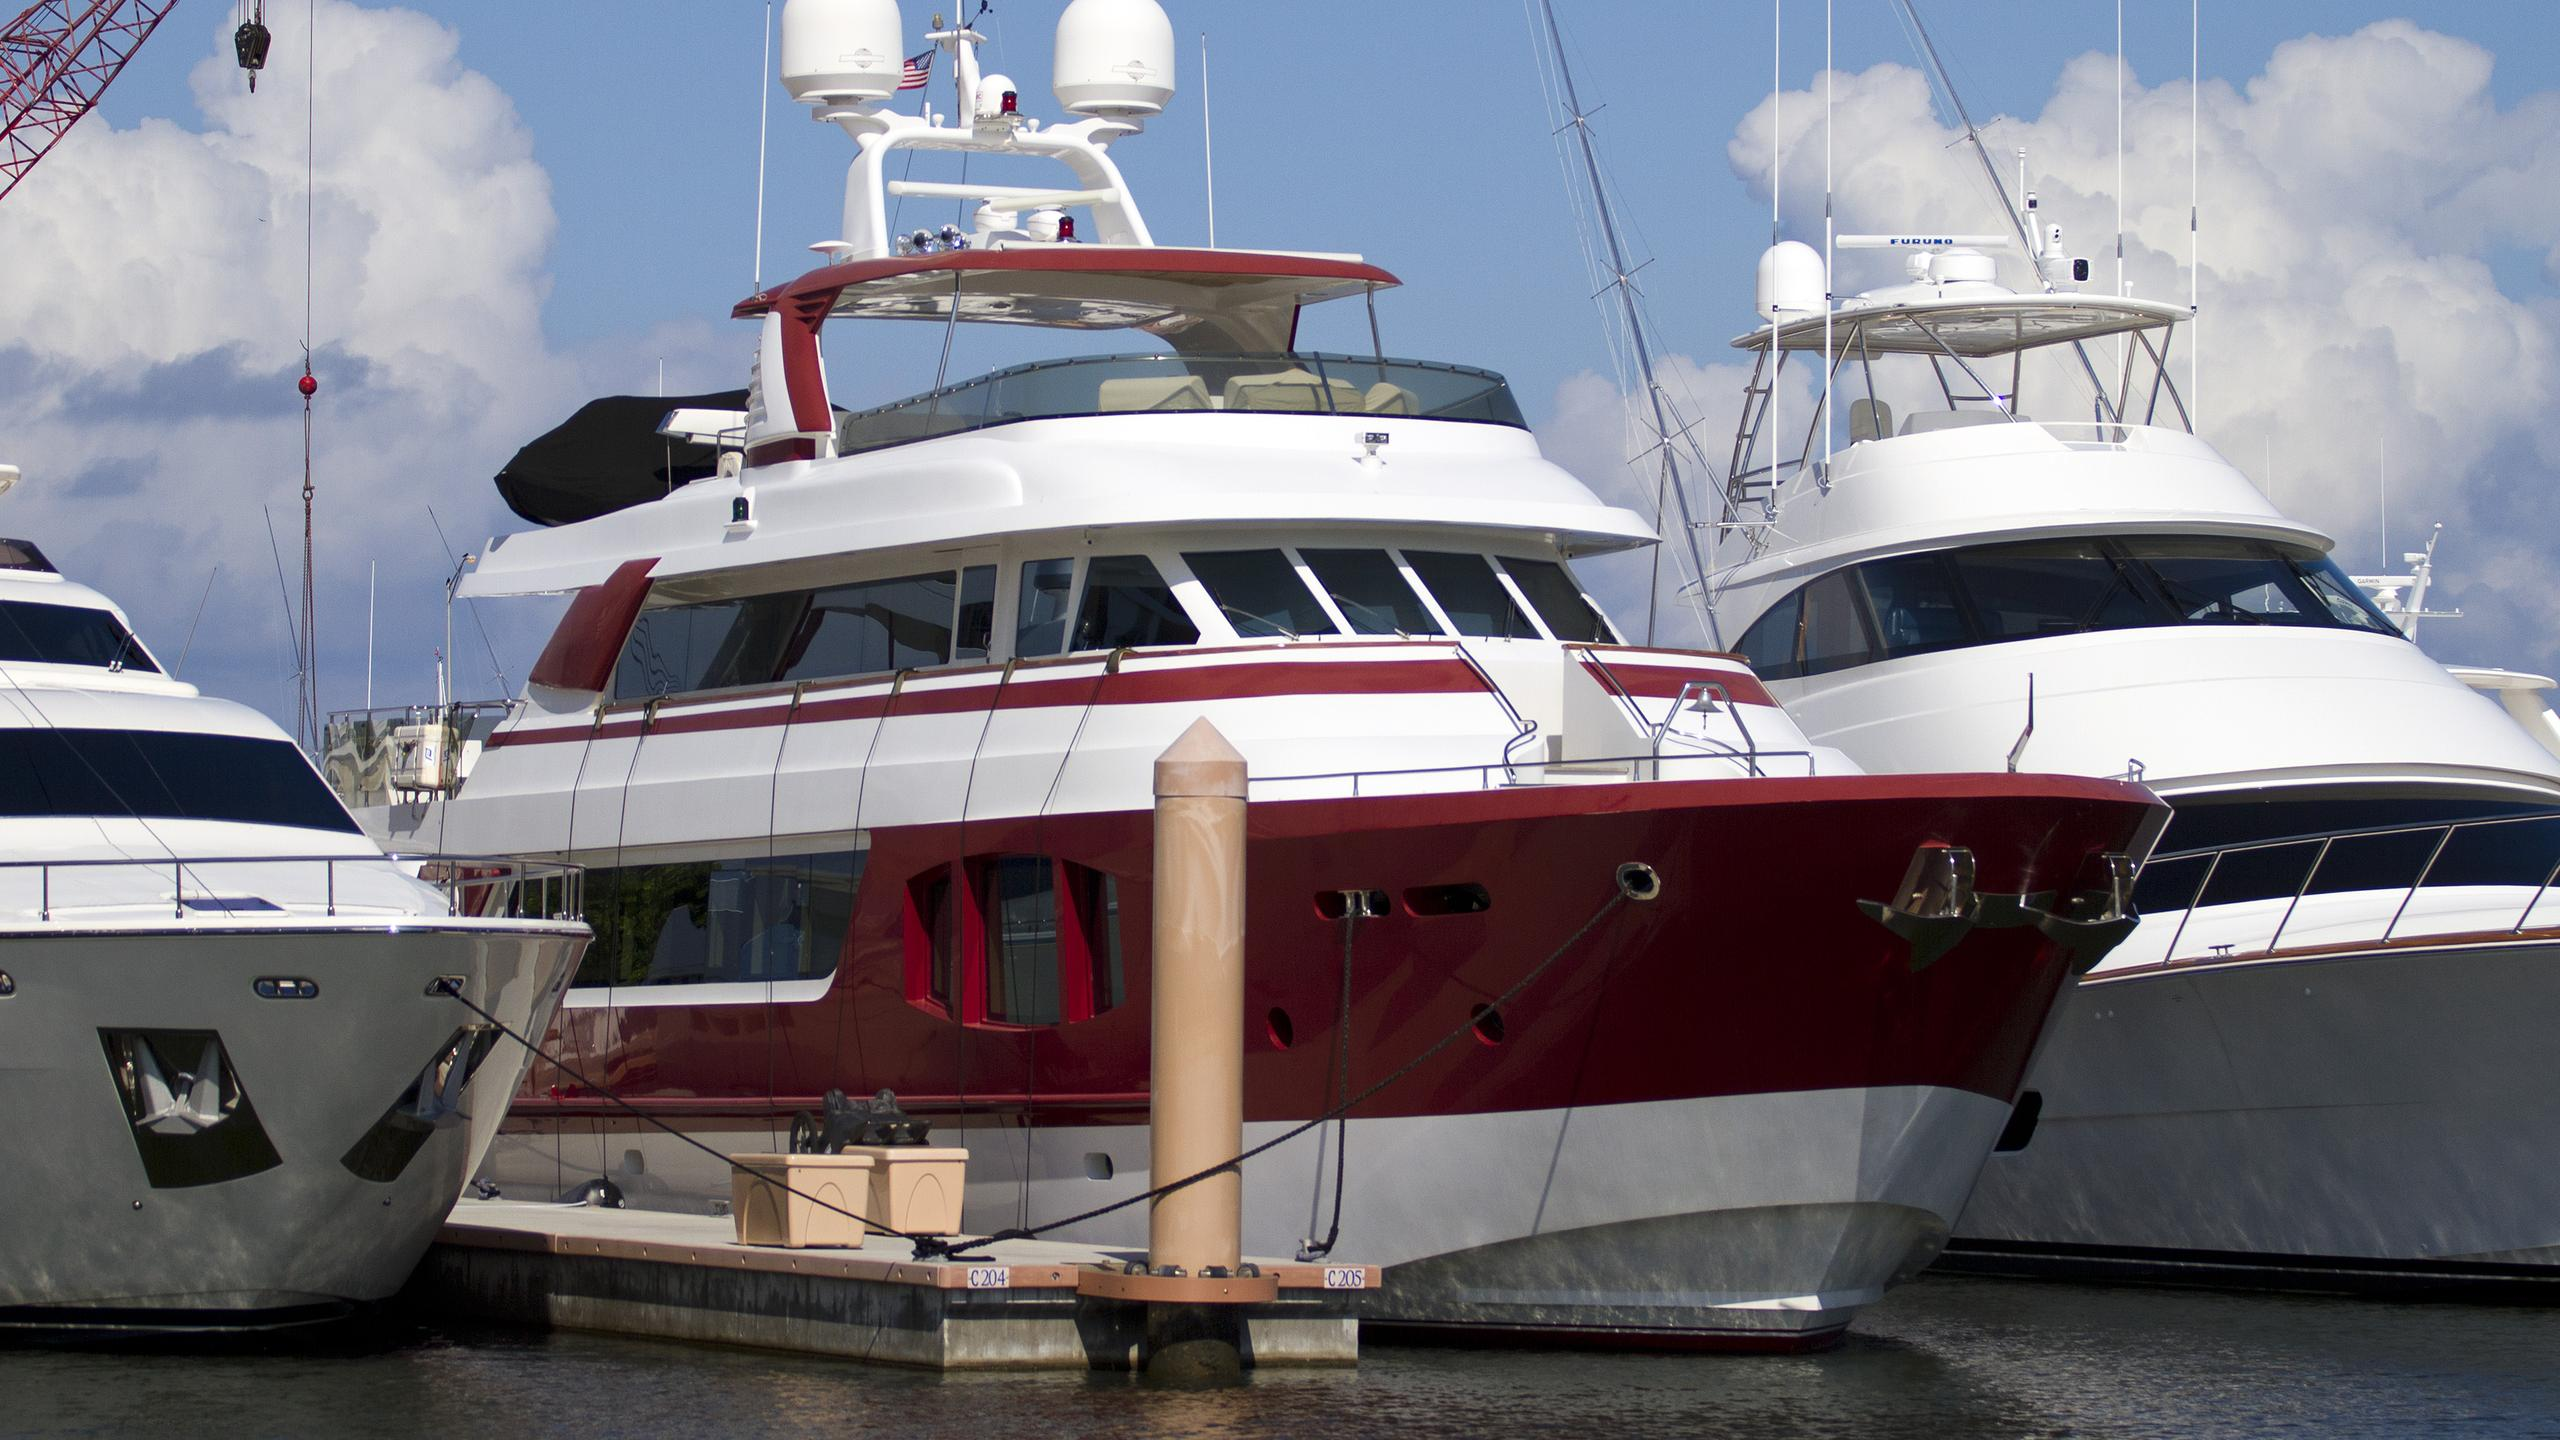 mcp-yachts-red-pearl-2010-motor-yacht